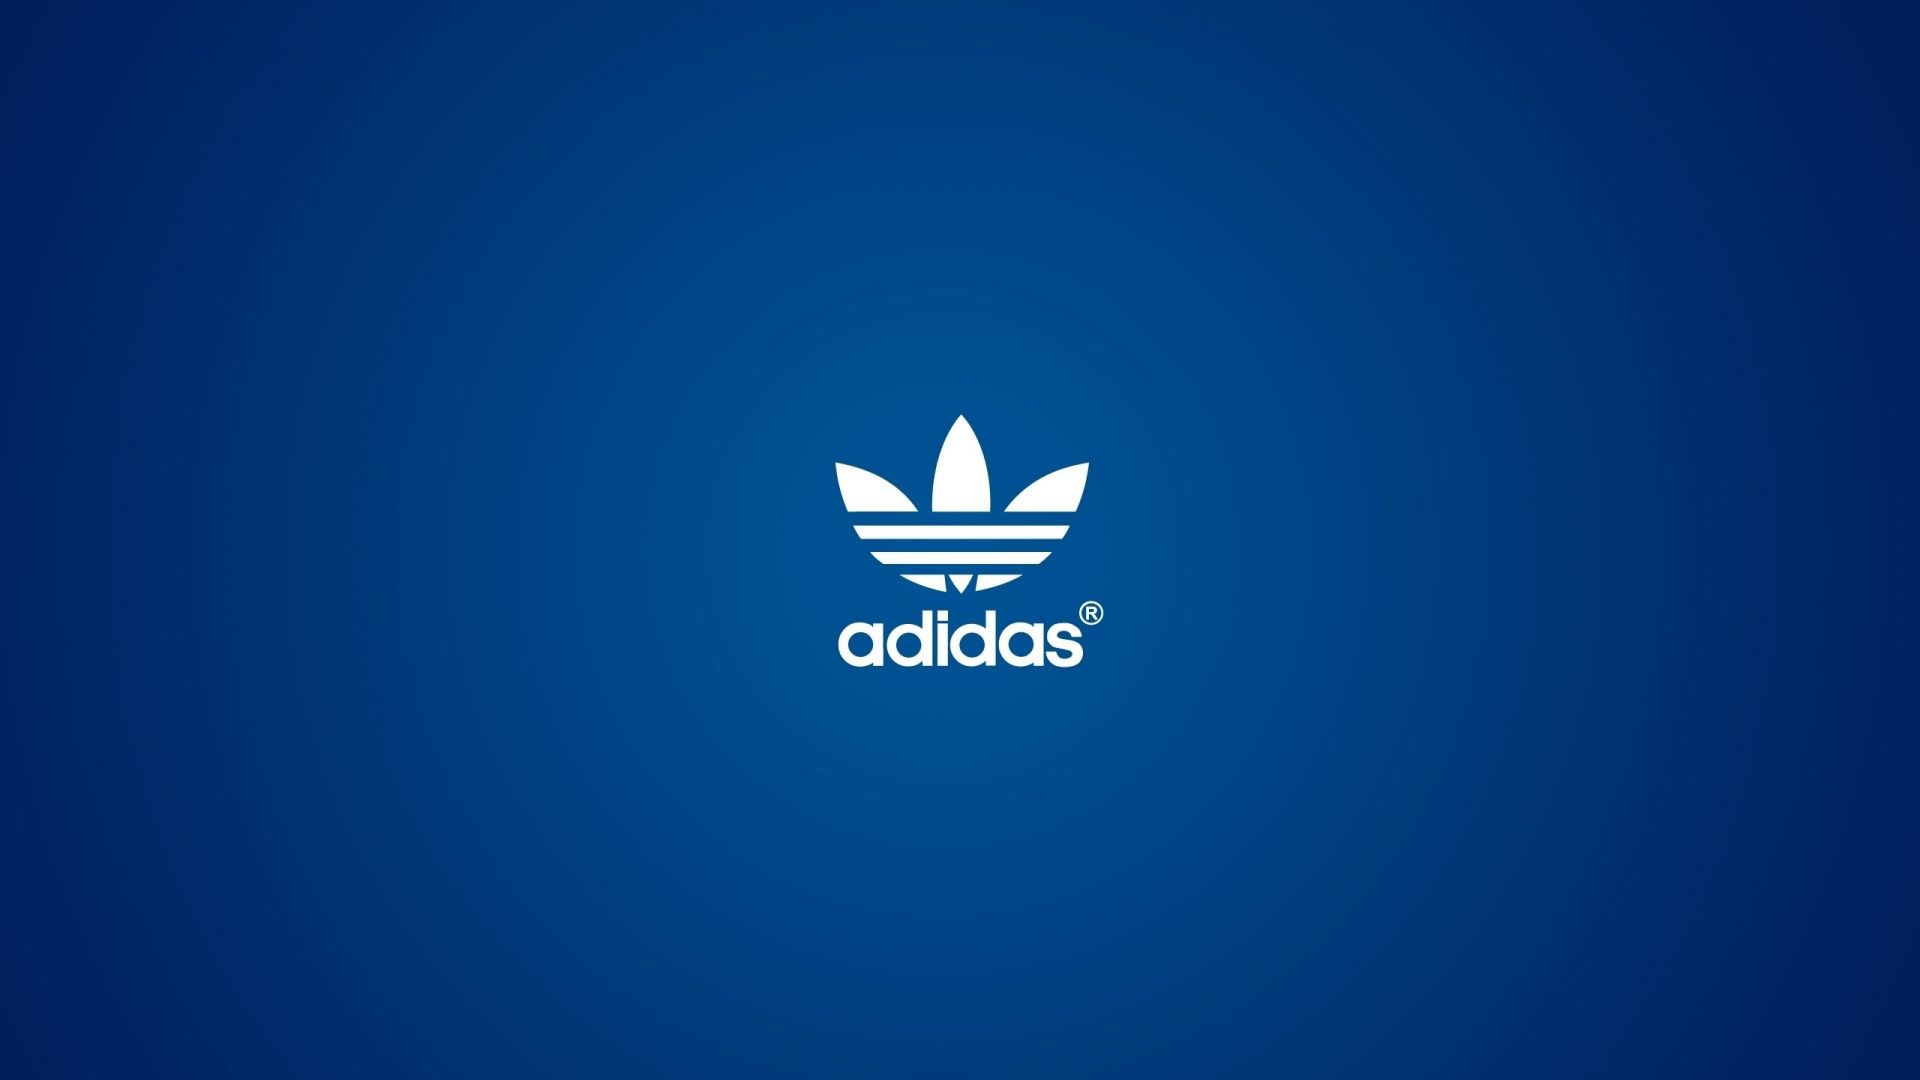 Simple Design Adidas White Logo And Blue Background HD